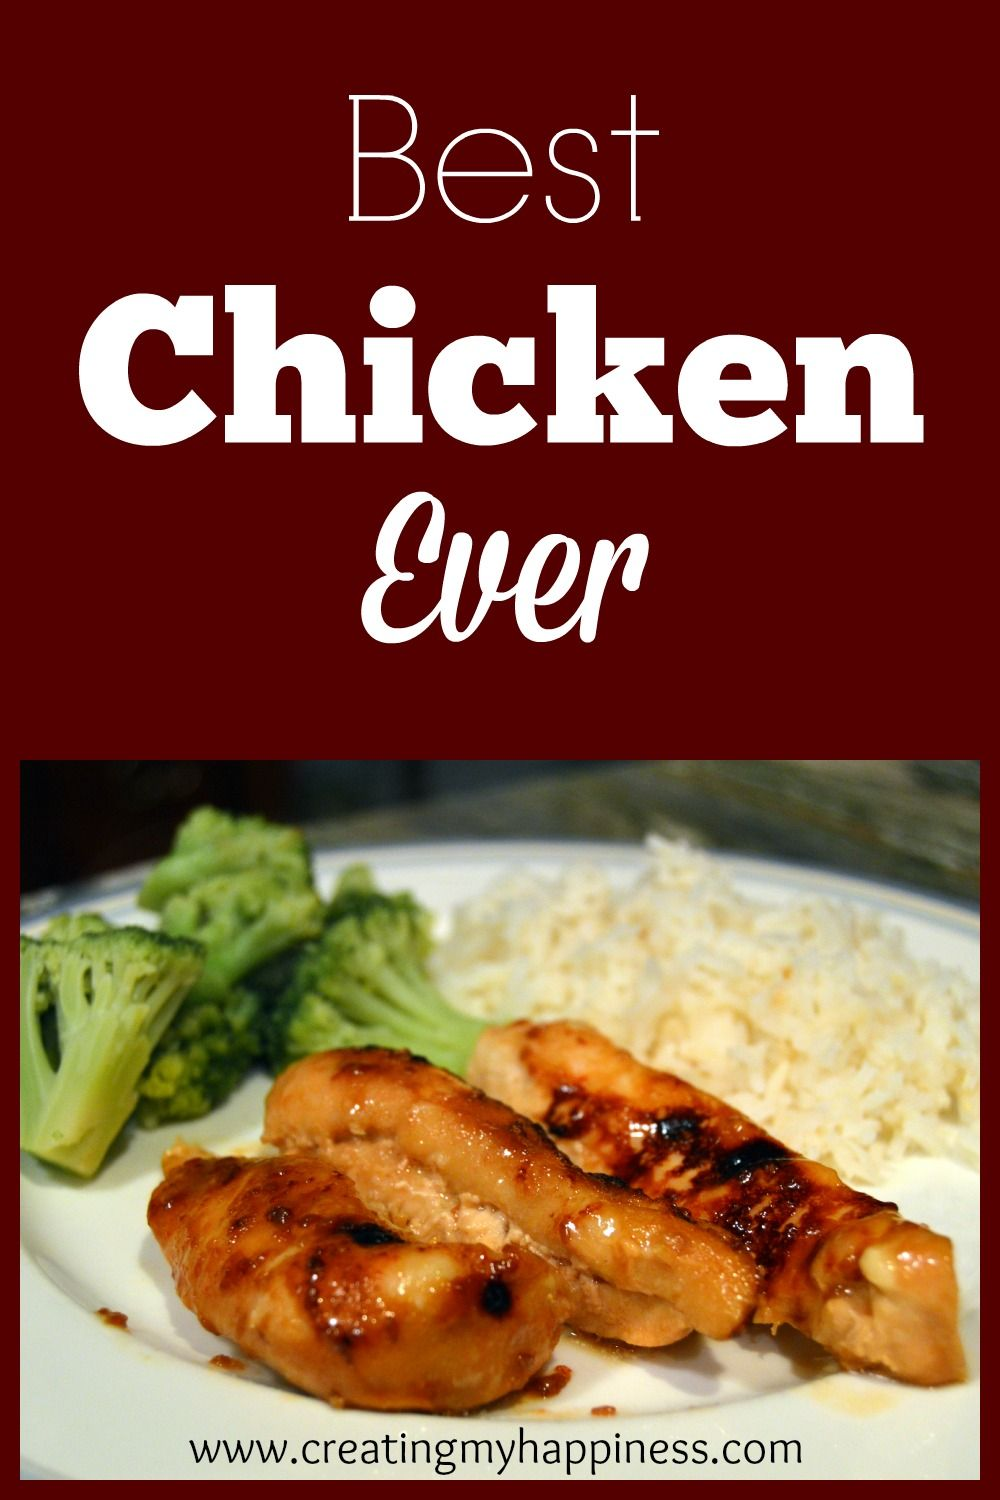 A great, easy recreation of a classic dish from a hometown restaurant, the Puritan. These chicken tenders are easy to make and taste great!